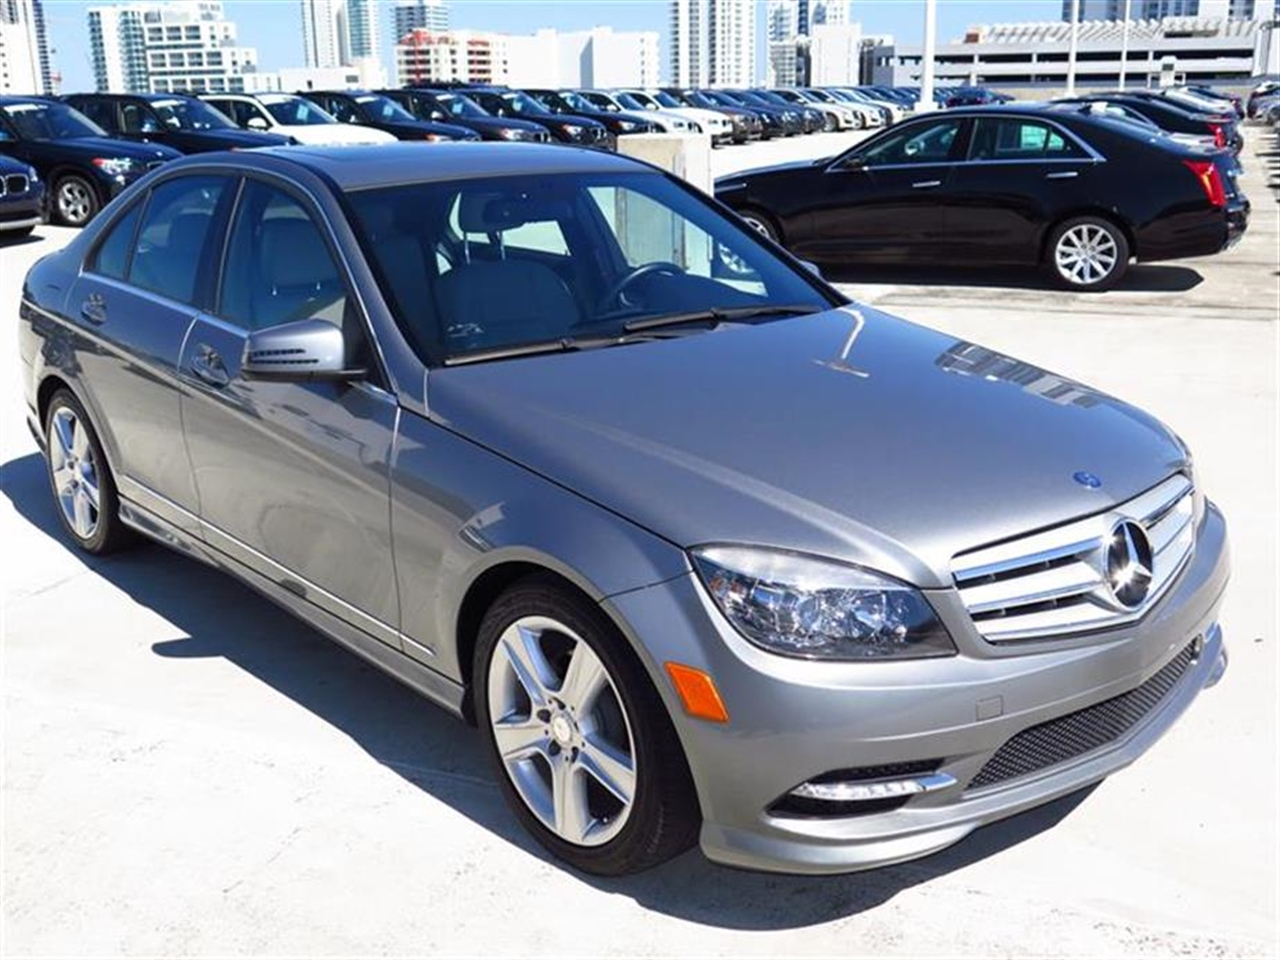 2011 Mercedes C-CLASS 4dr Sdn C300 Luxury RWD 36674 miles 4-spoke leather-wrapped sport steering w